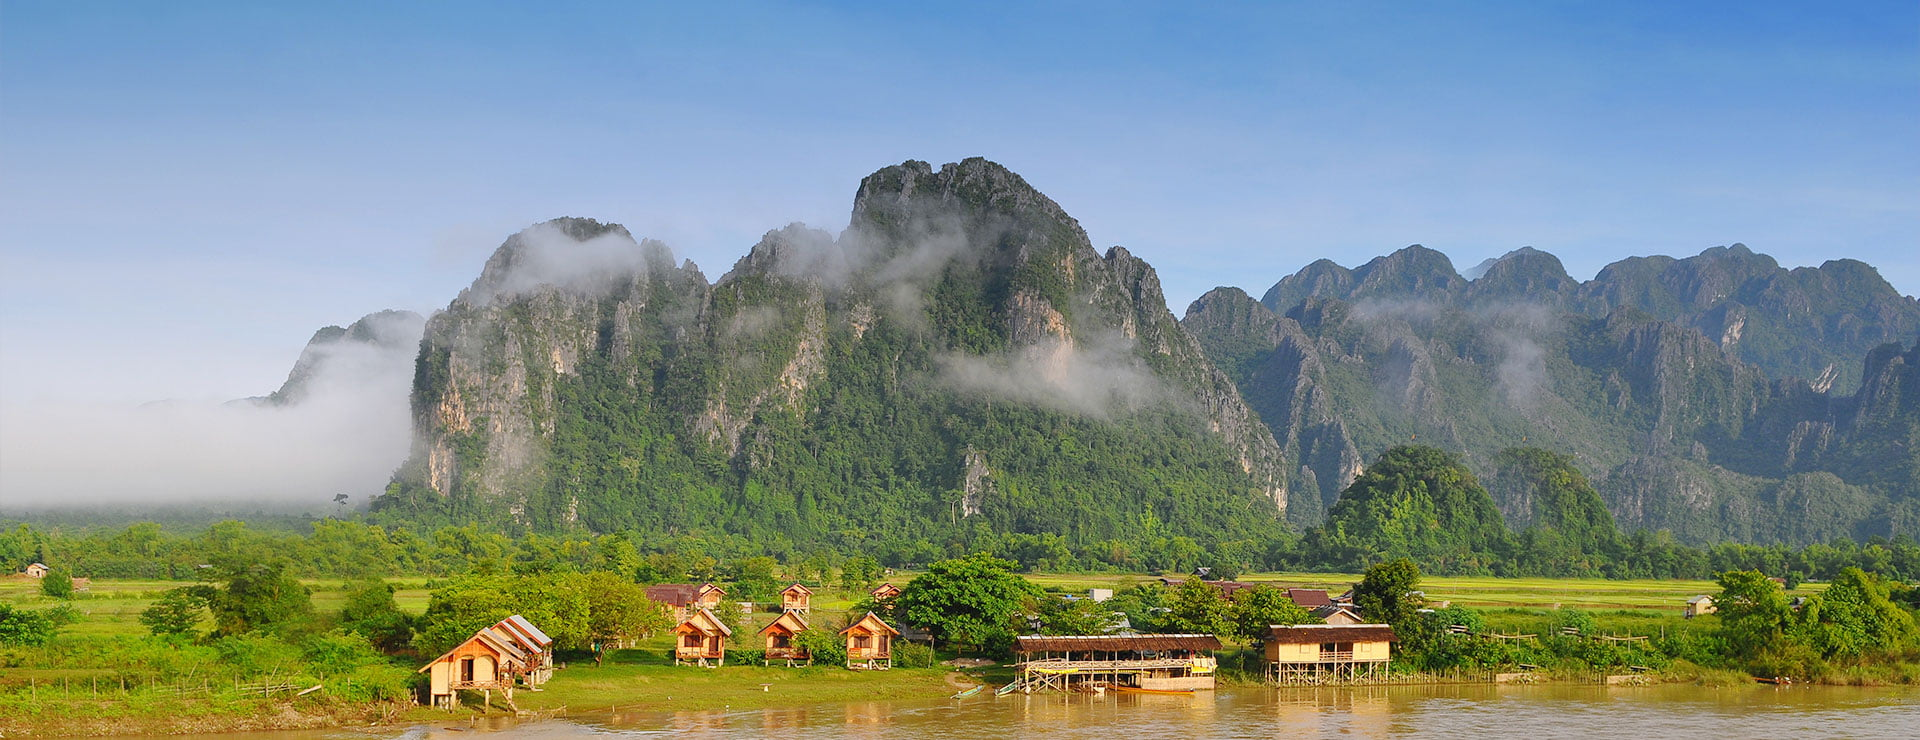 Why should you take your kids to Laos?